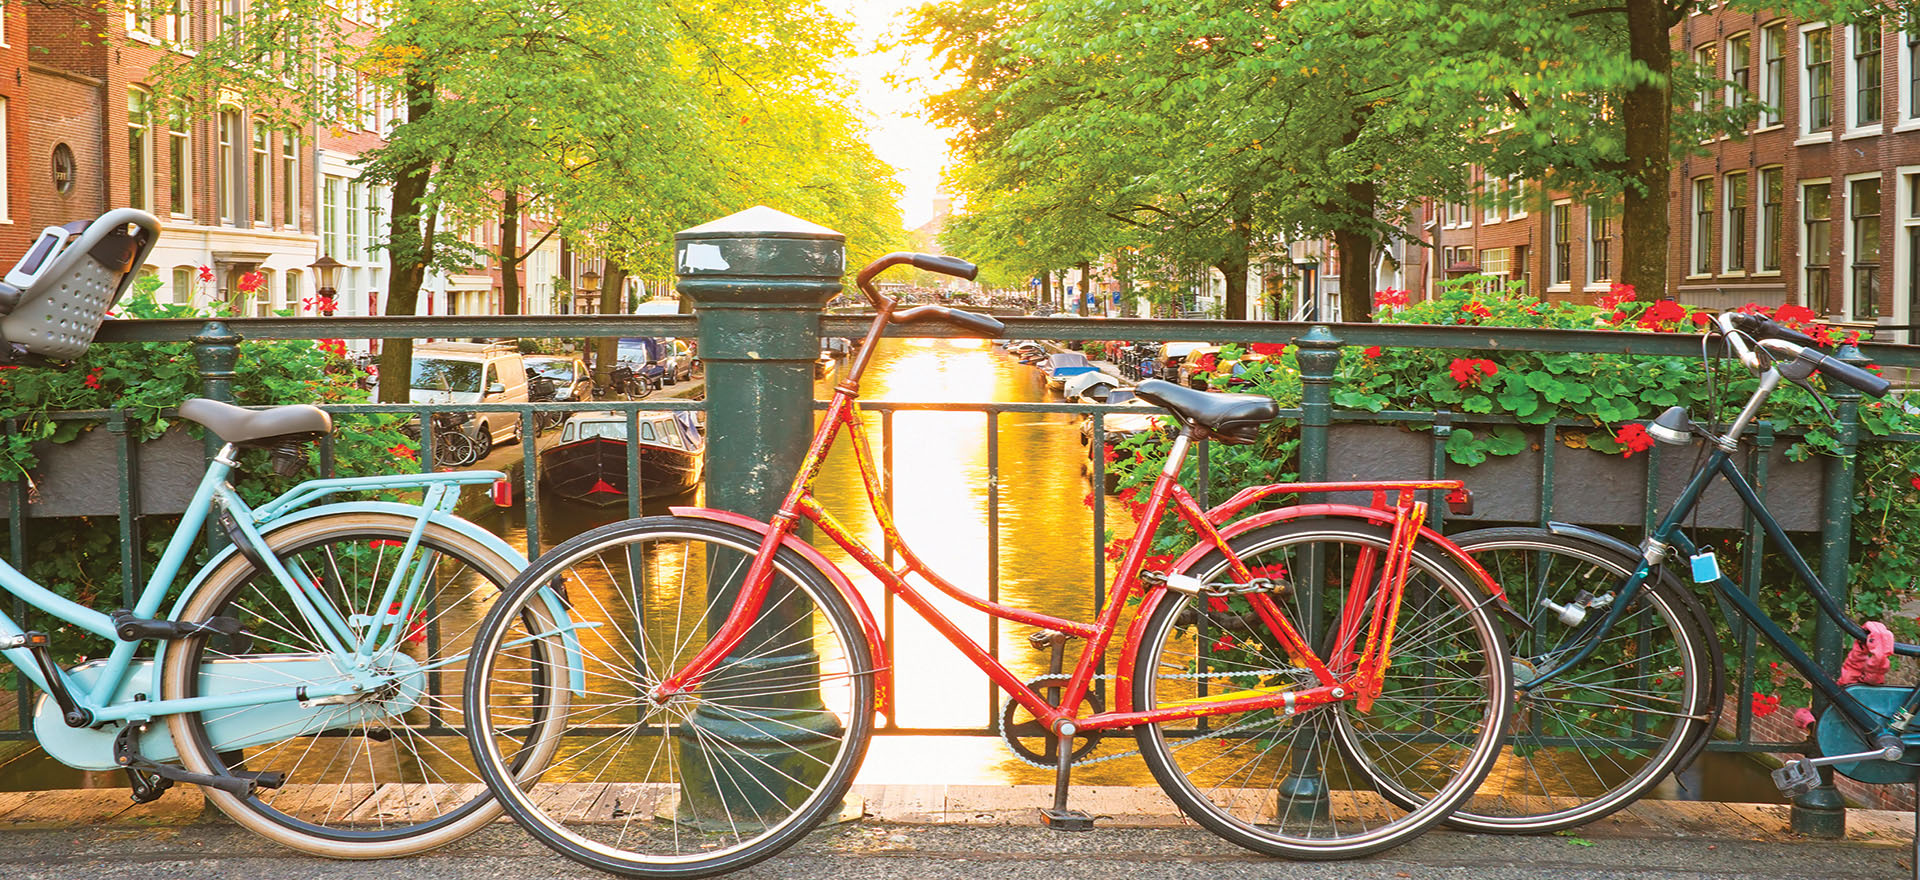 Red and blue bikes Amsterdam canal